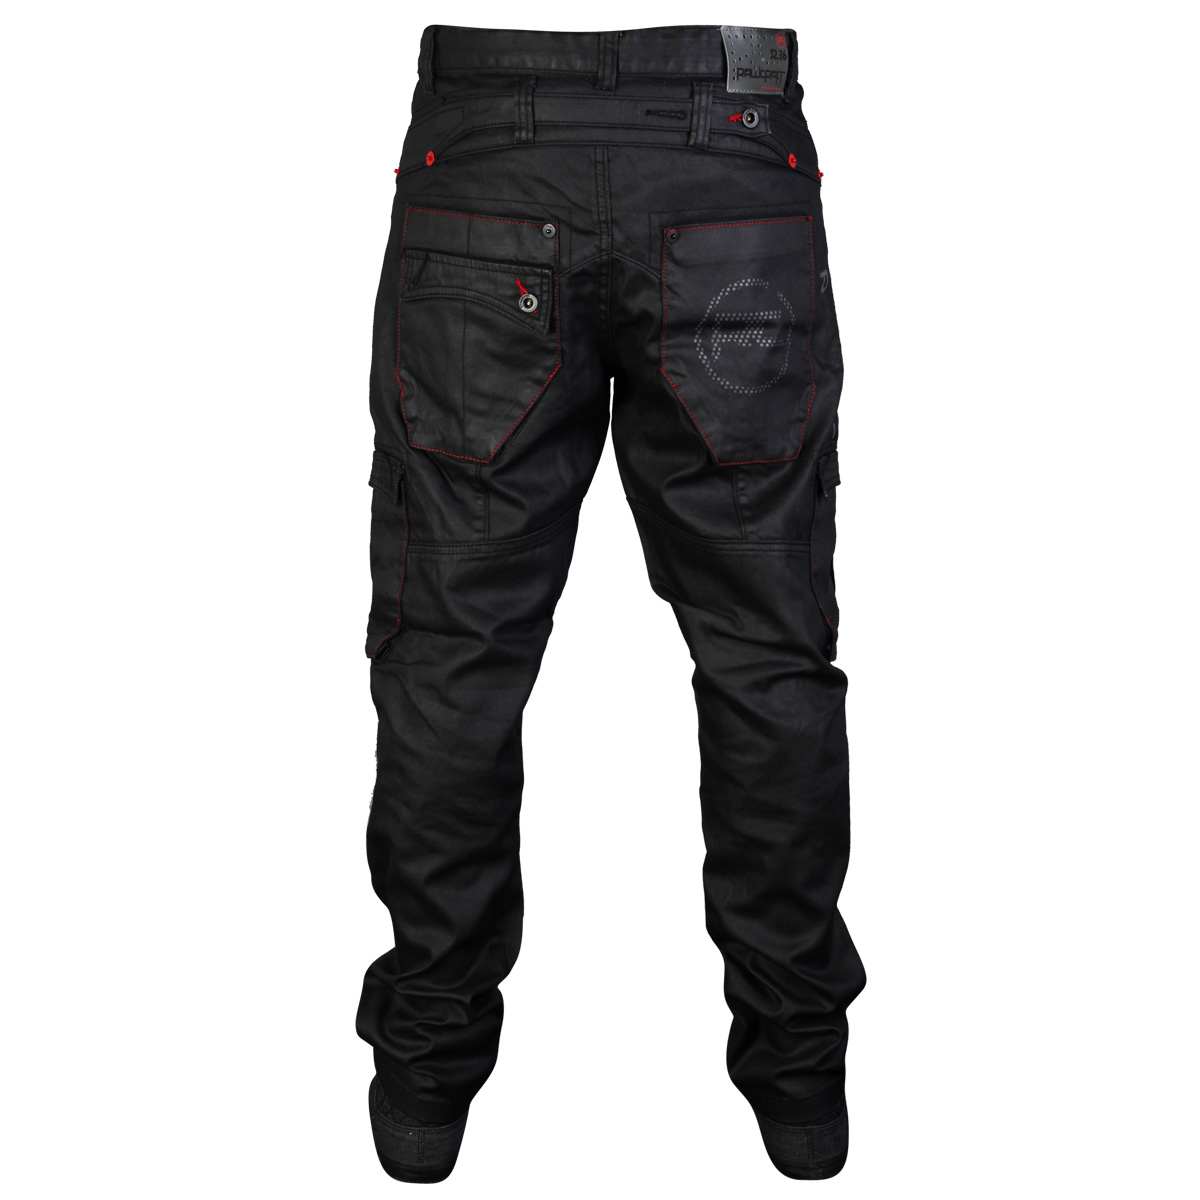 MENS BLACK RAWCRAFT STRAIGHT FIT LETO DESIGNER DENIM JEANS ALL ...